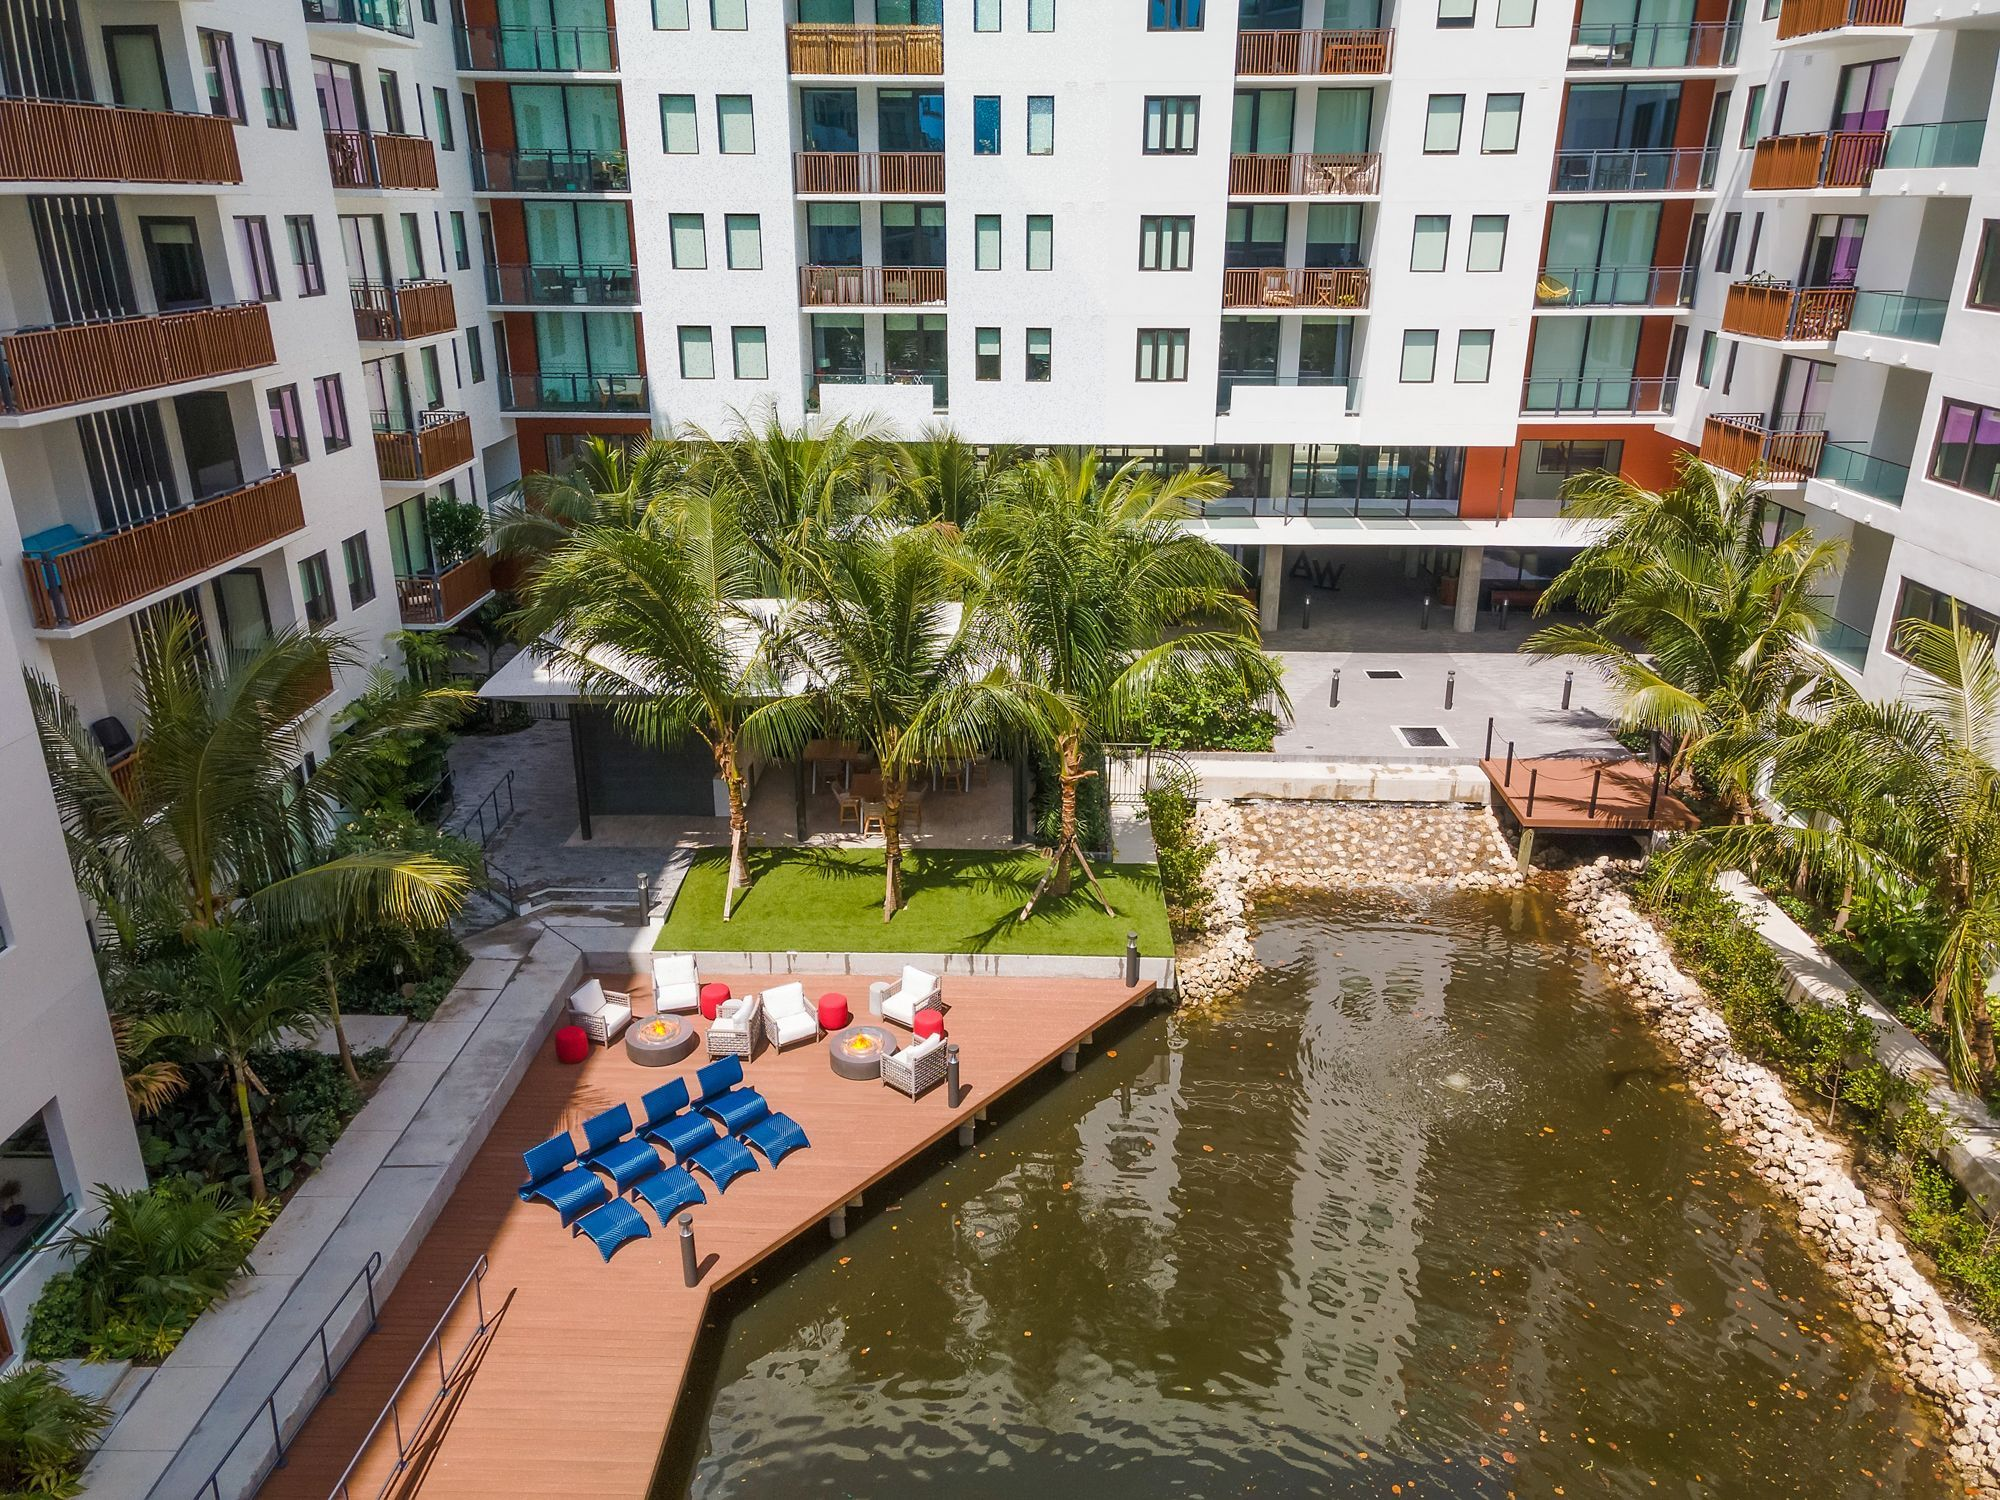 Marina area with seating, fire pit, and view of water and apartment buildings